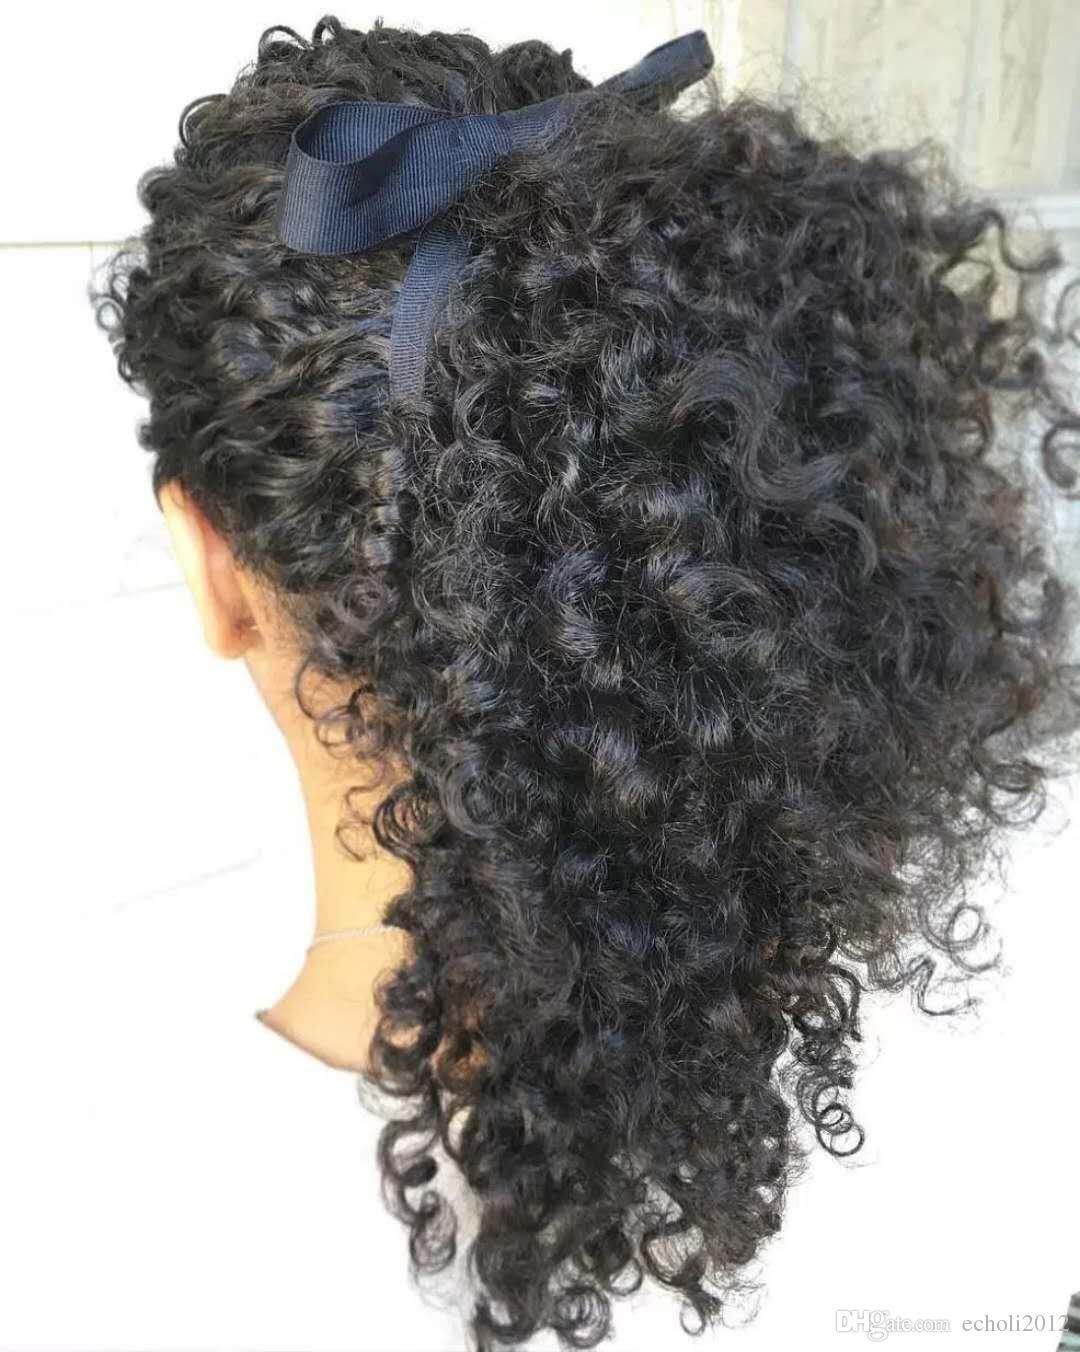 100% Brazilian Clip In Human Ponytail Hair Extensions Kinky Curly Drawstring ponytail afro puffs Virgin curly ponytails 1b 140g for sale